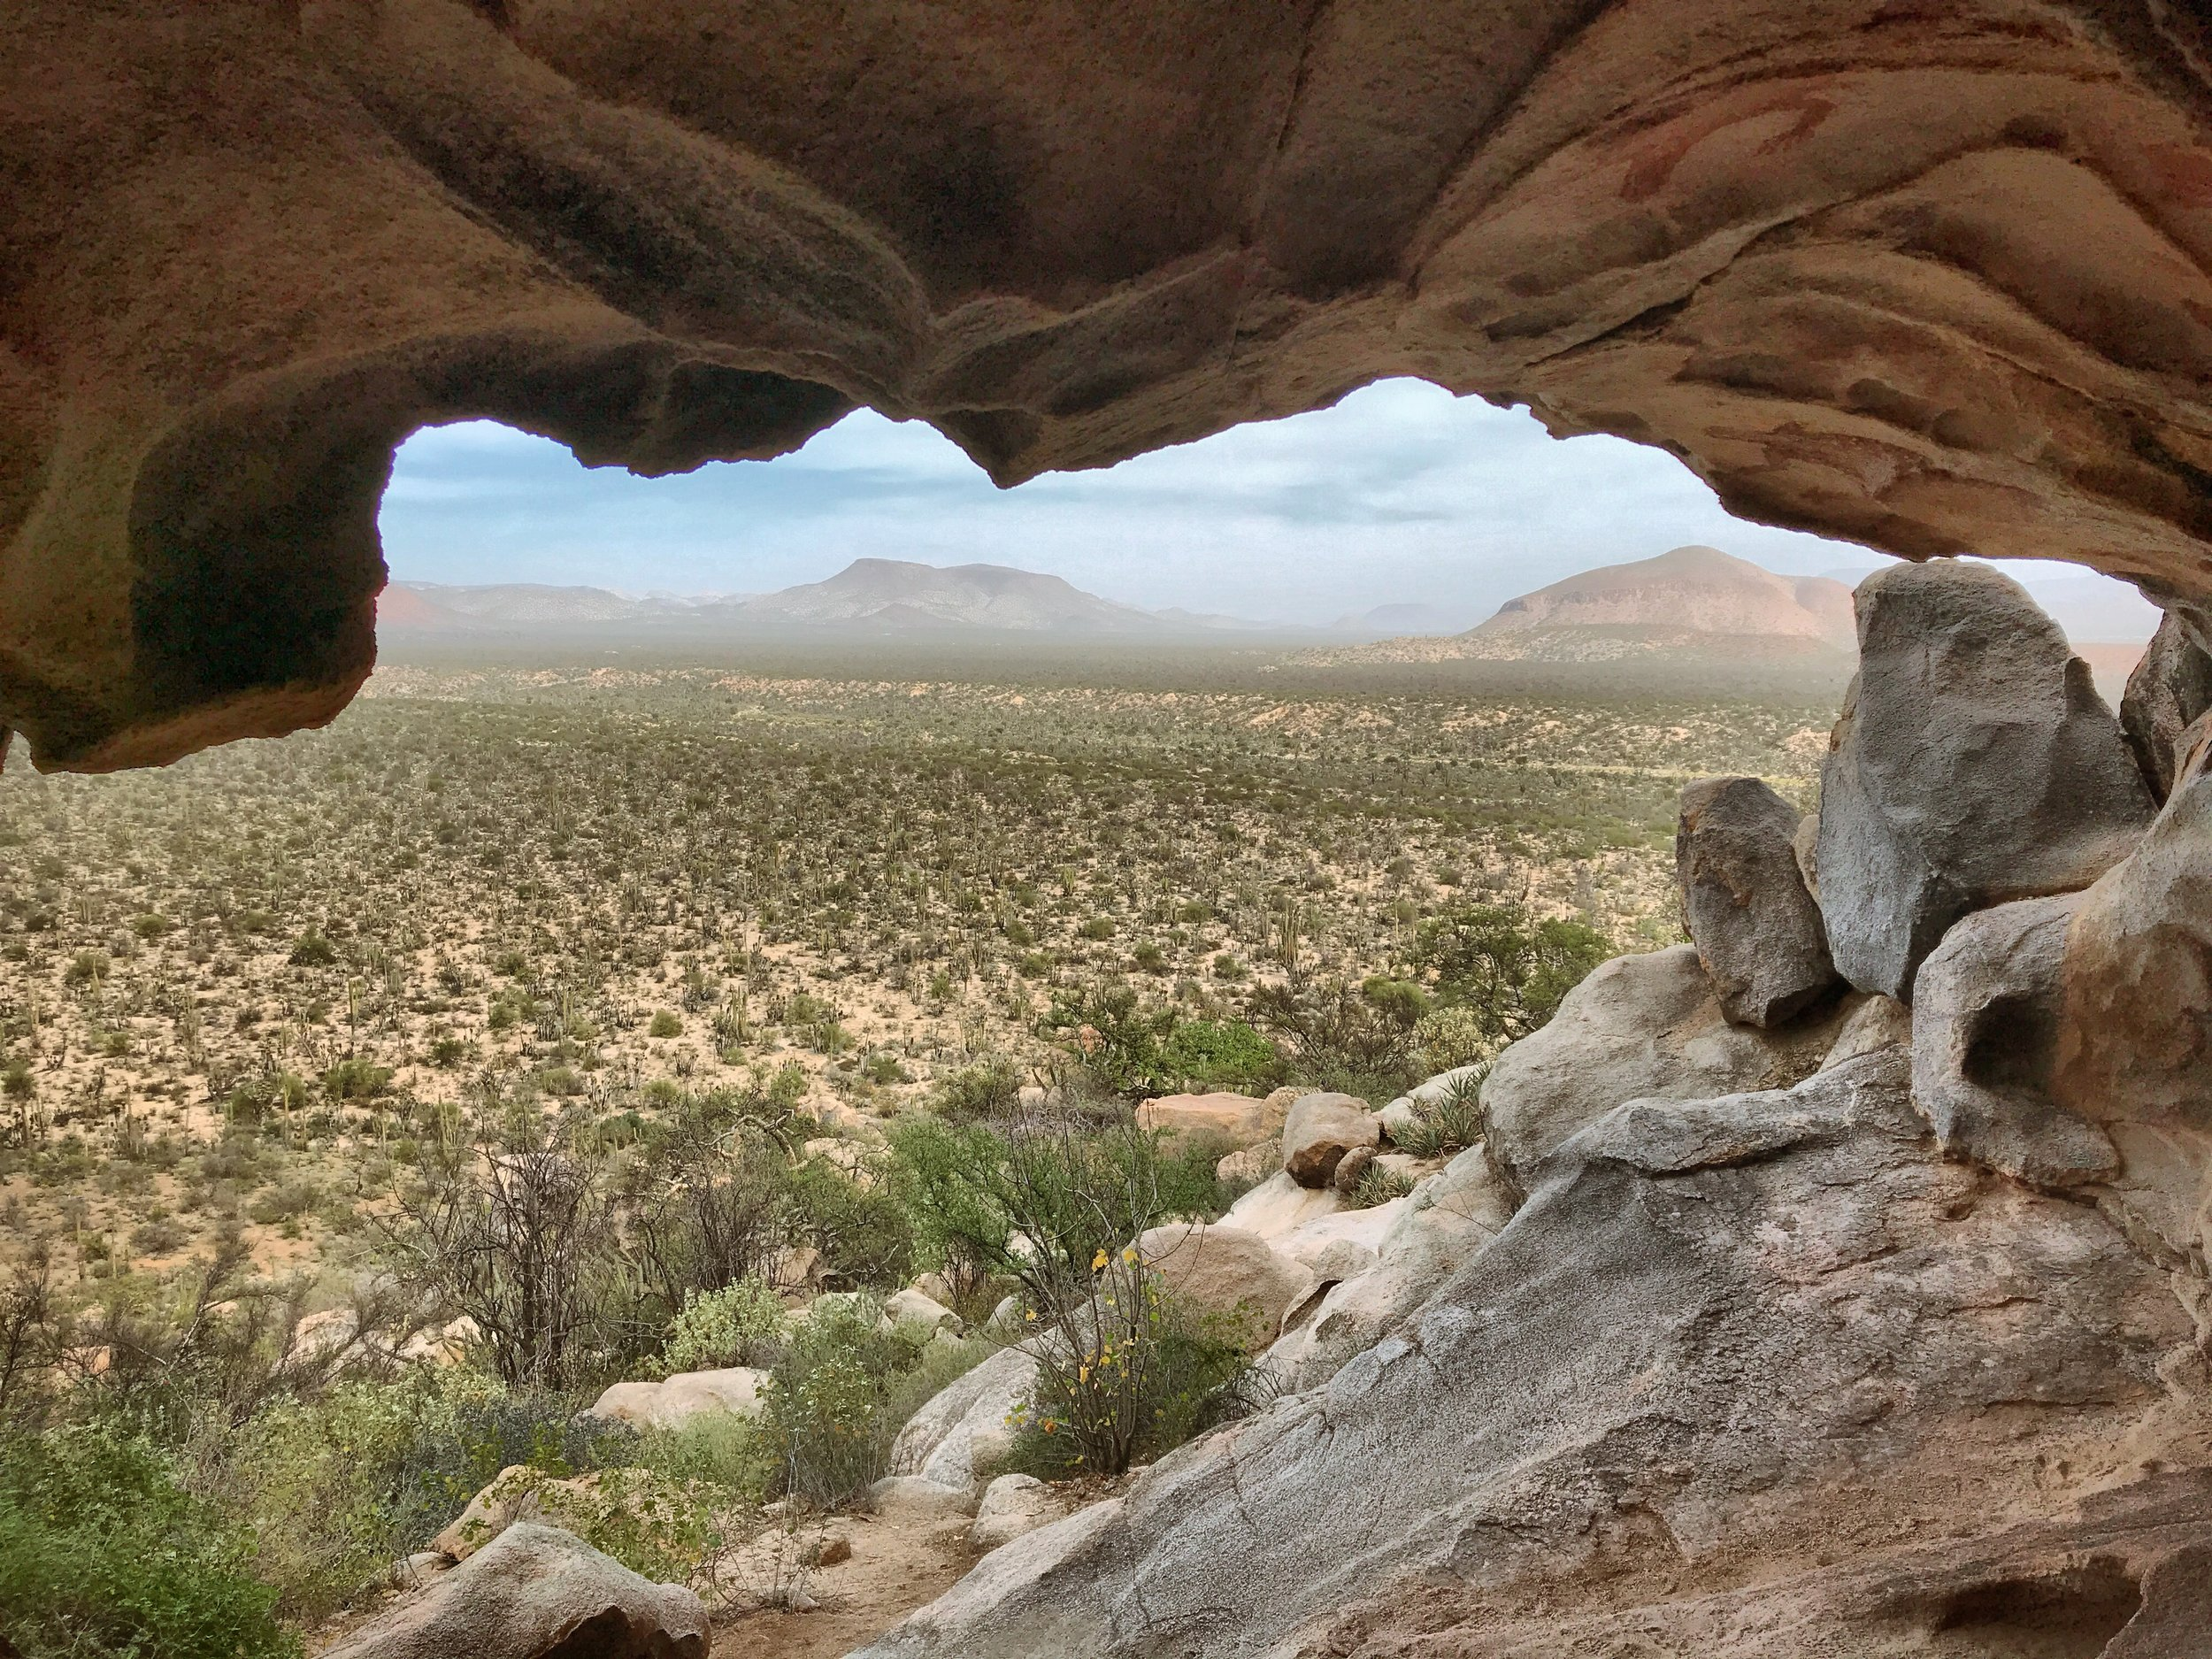 The view looking out of the petroglyphs cave.